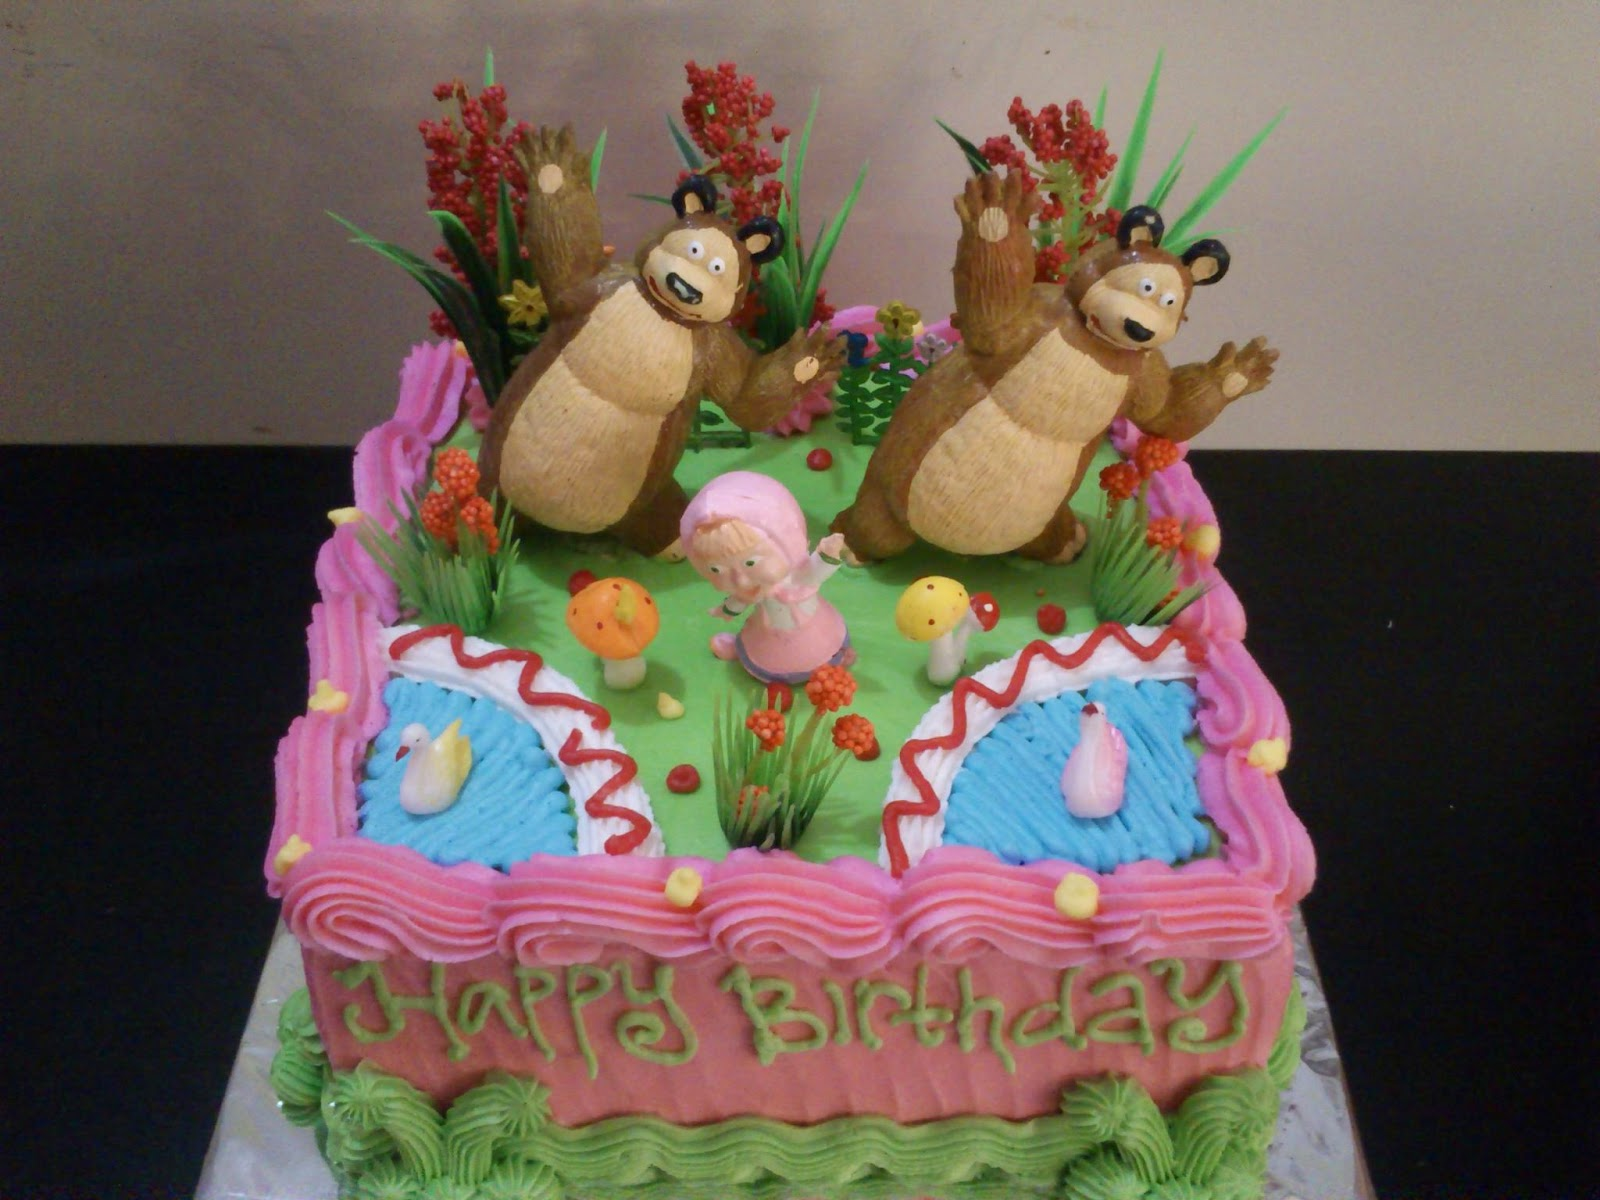 Toko Kue Bolu Enak Tart Marsha And The Bear